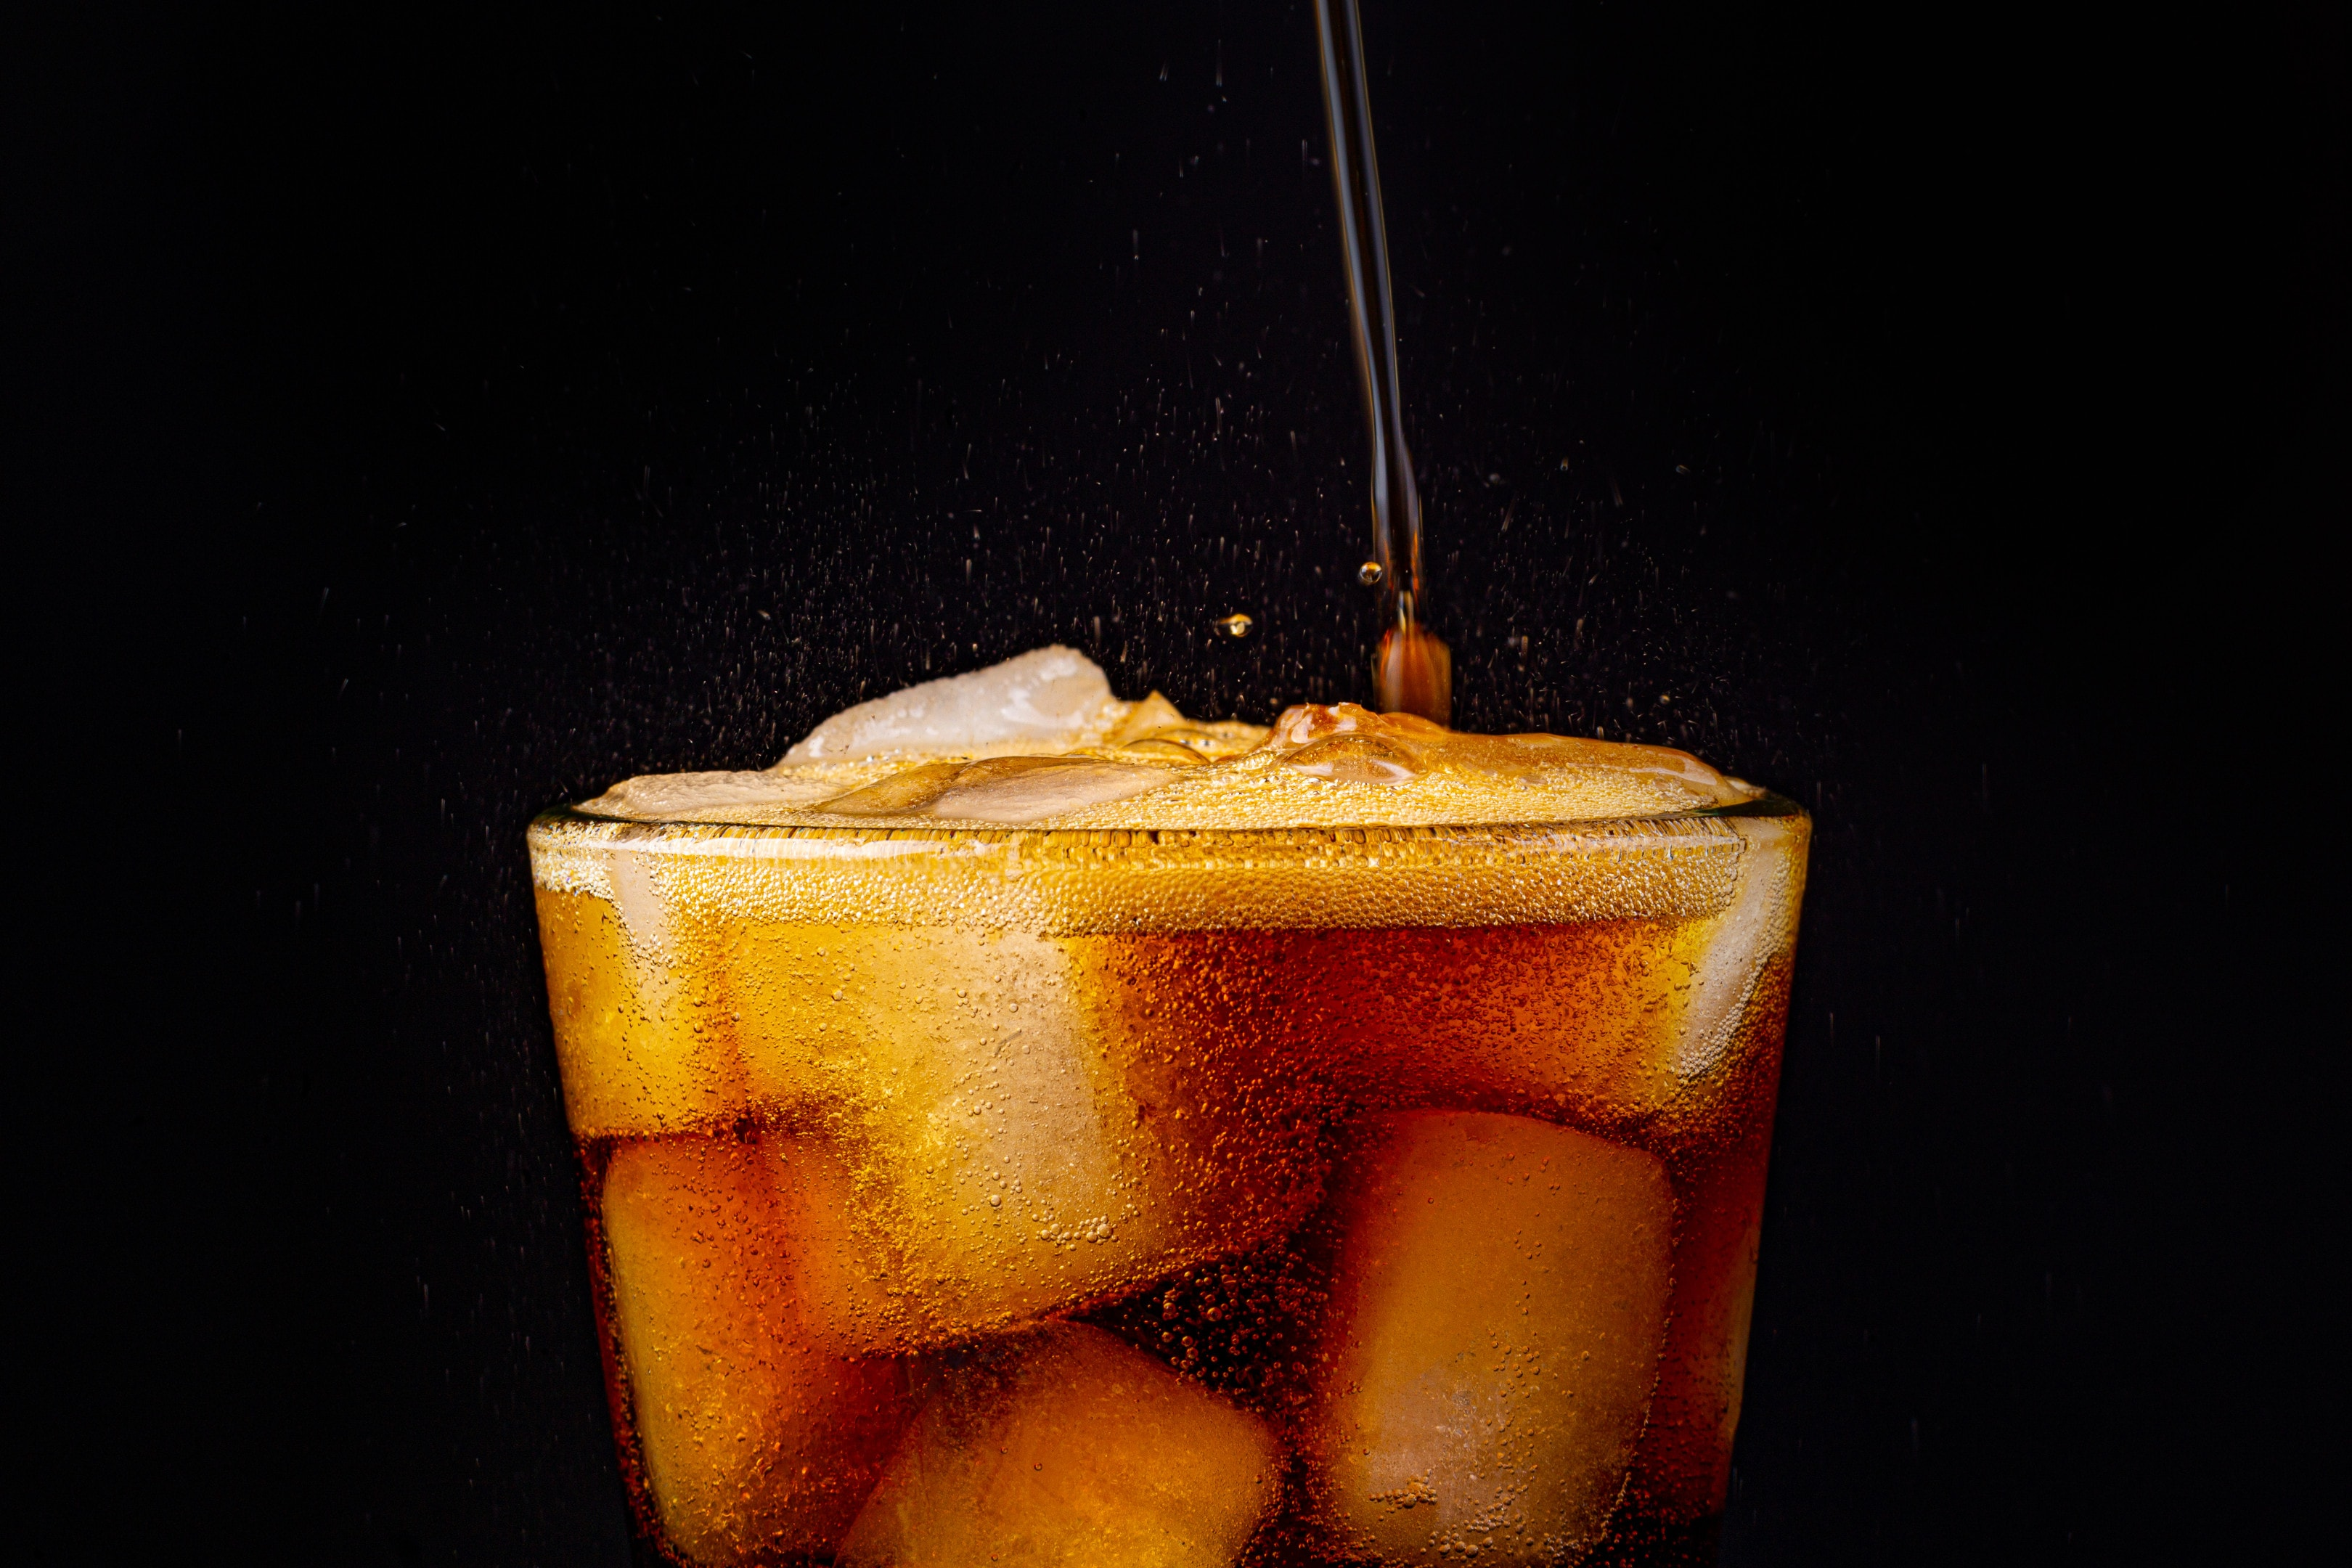 Fizz sparkling cola soda with ice cubes